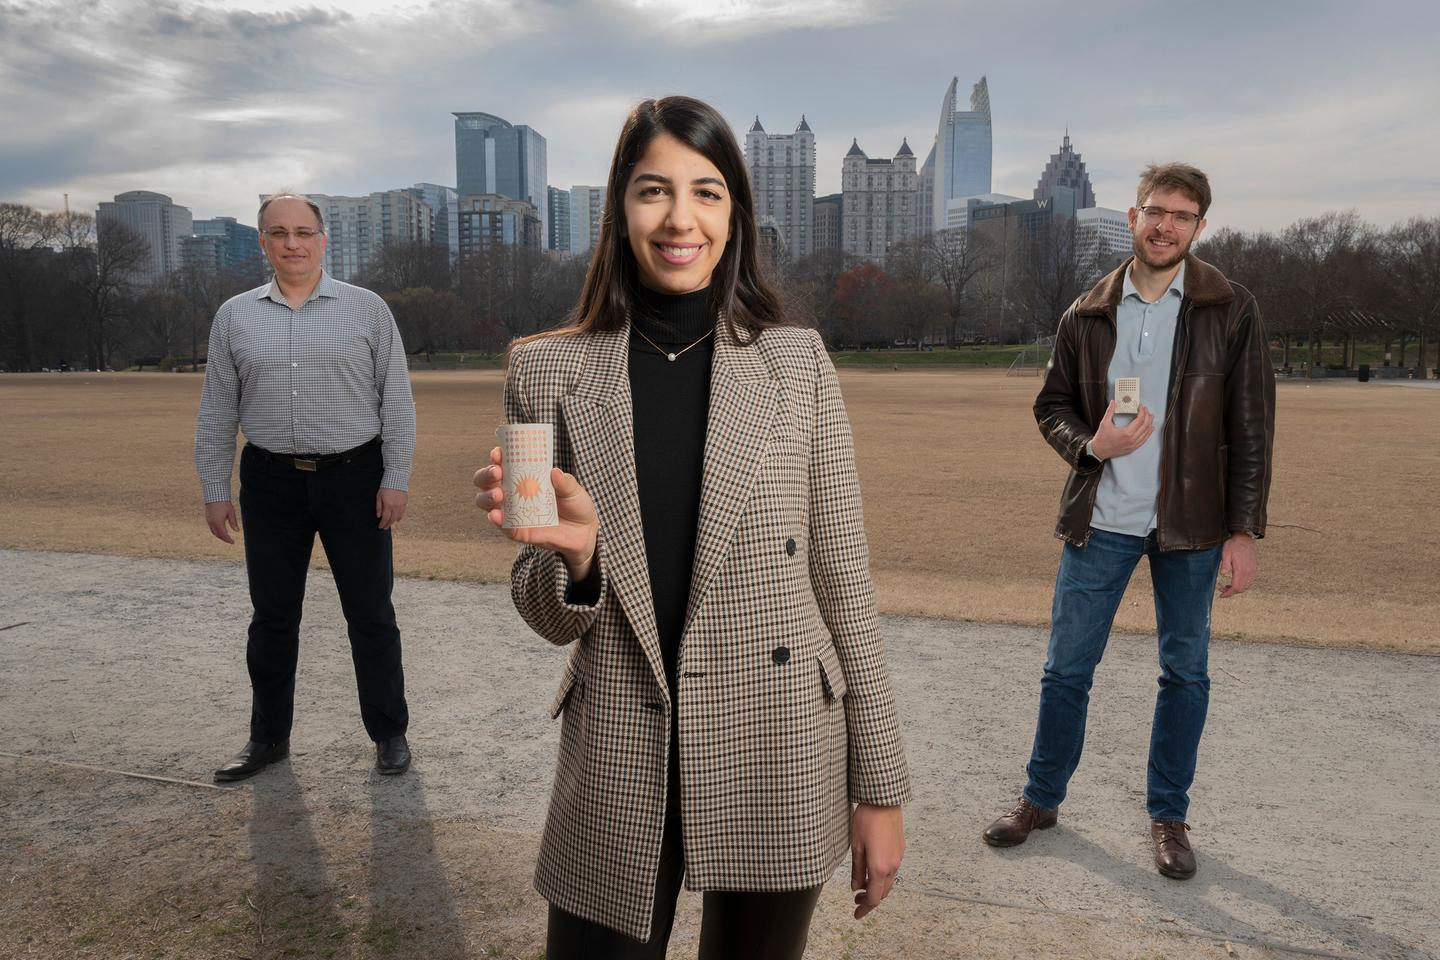 Georgia Tech researchers Aline Eid (center), Manos Tentzeris (left), and Jimmy Hester (right) have developed a flexible Rotman lens-based rectifying antenna system for 5G energy harvesting that could eliminate the world's reliance on batteries for powering devices.